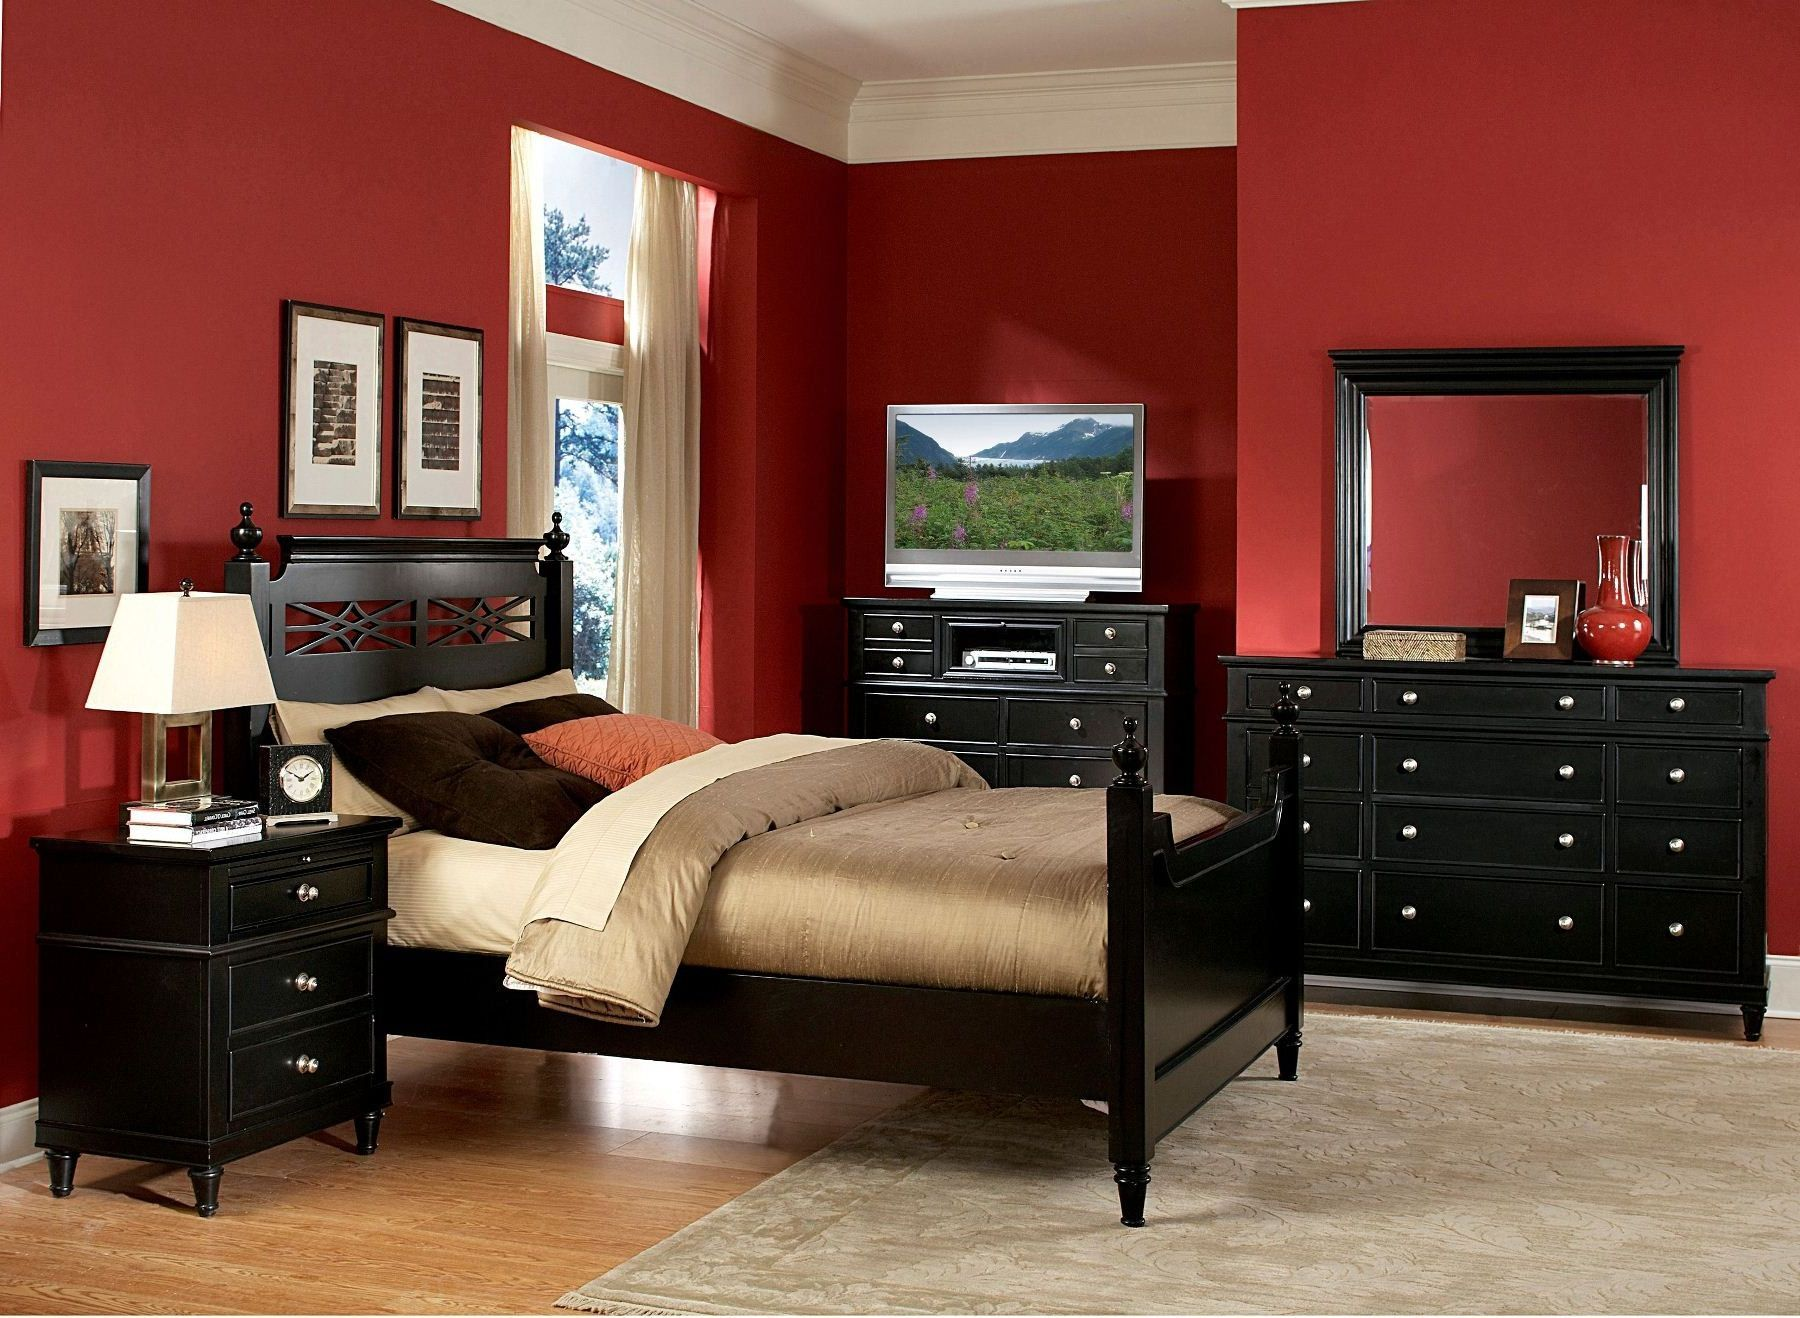 Black and red master bedroom - 15 Spectacular Red Bedroom Designs For More Dramatic Atmosphere